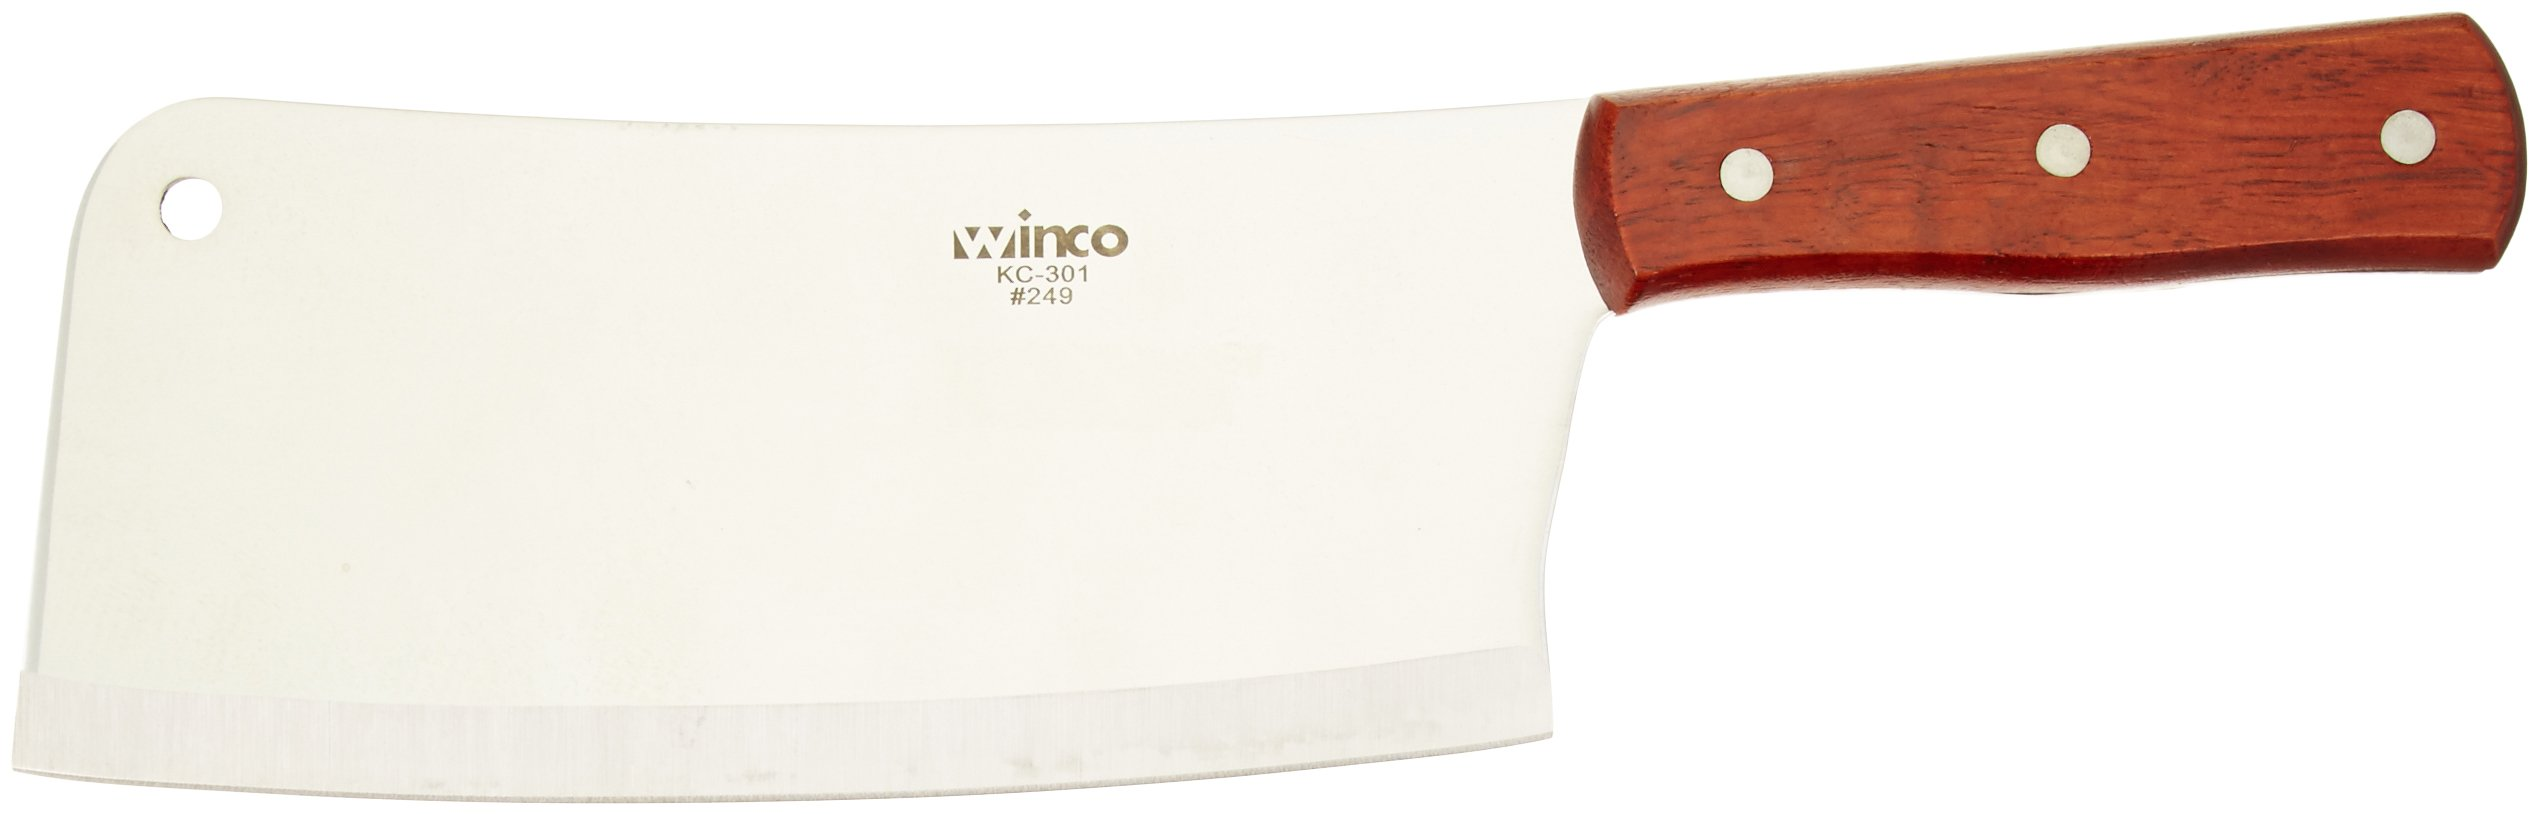 Winco 12 Heavy Duty Cleaver Set, with Wooden Handle